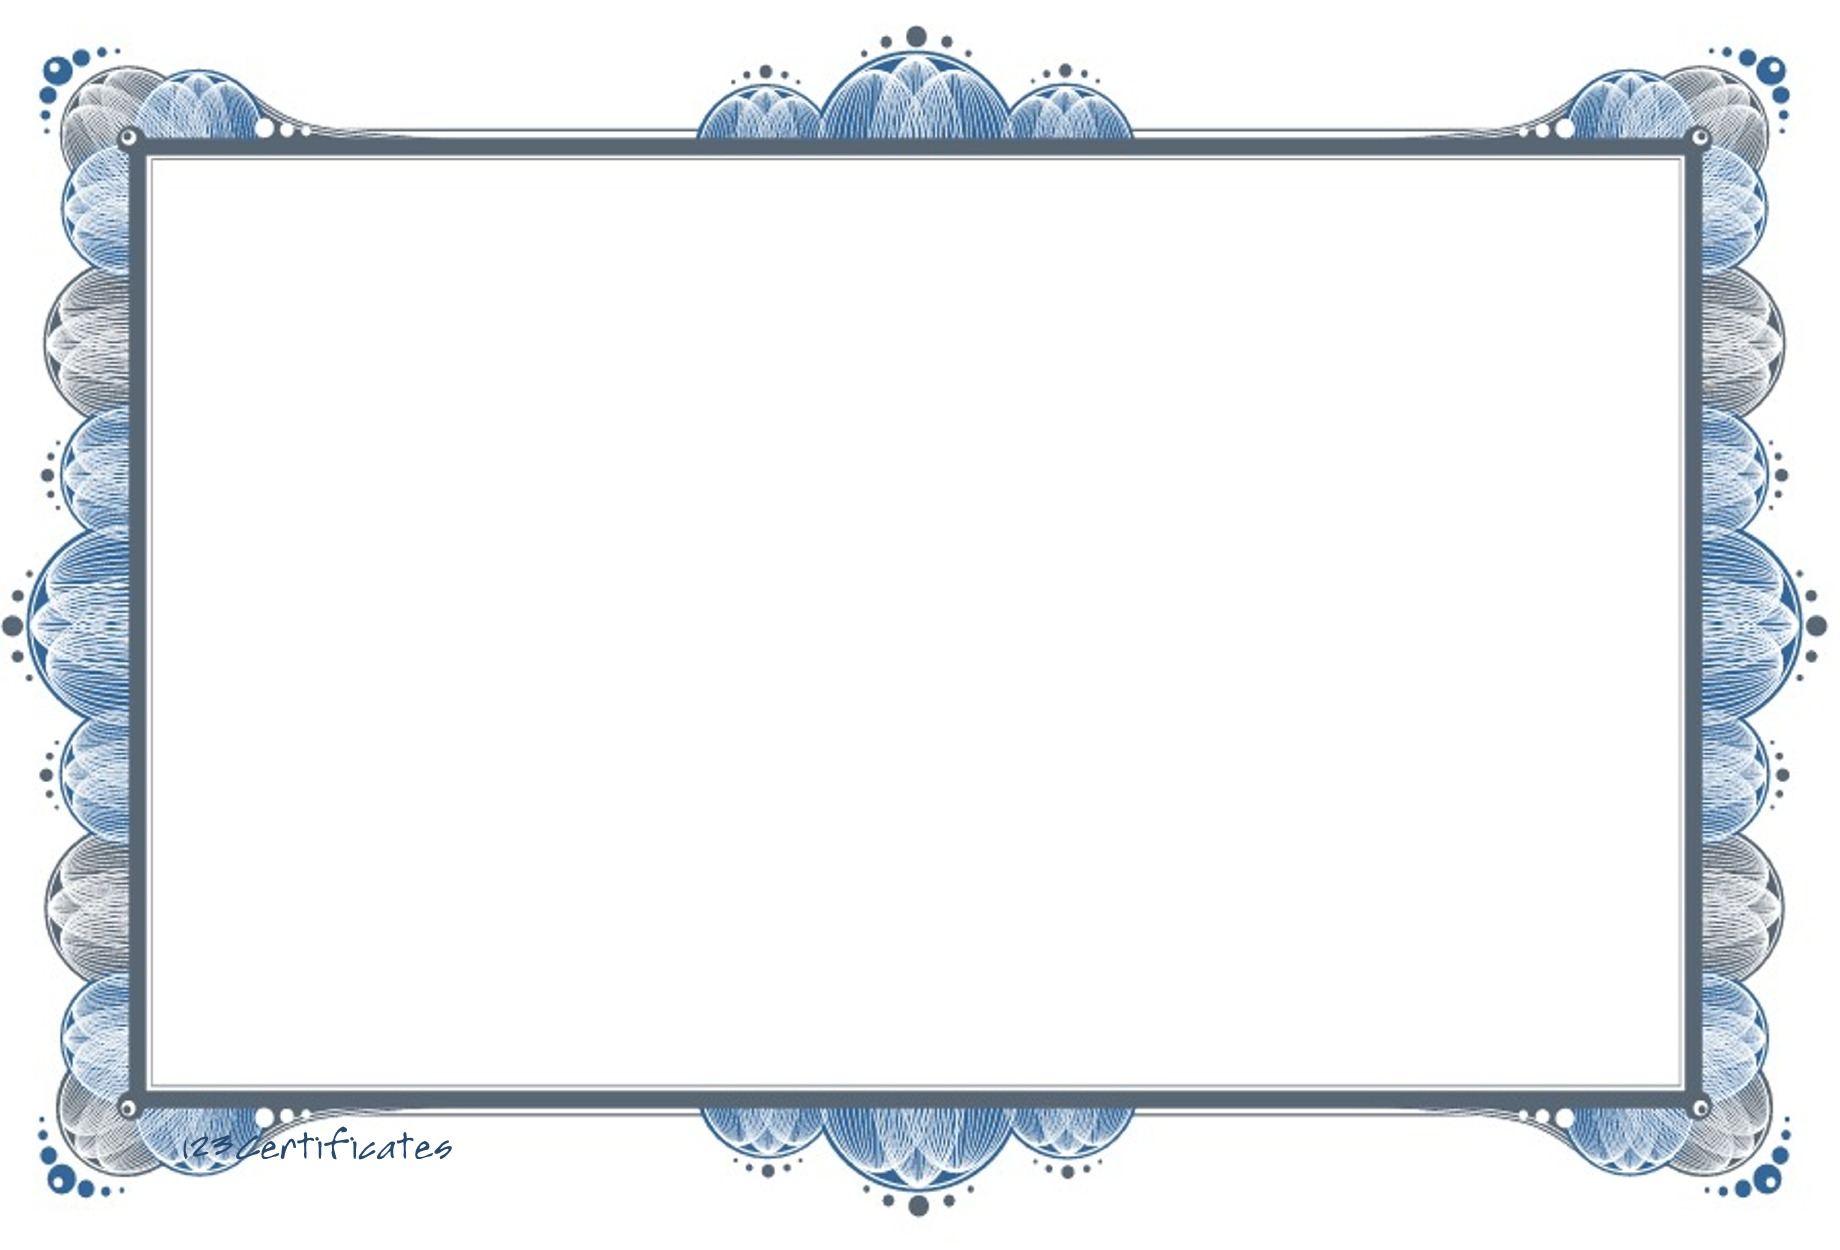 Free certificate borders to download, certificate templates for ...